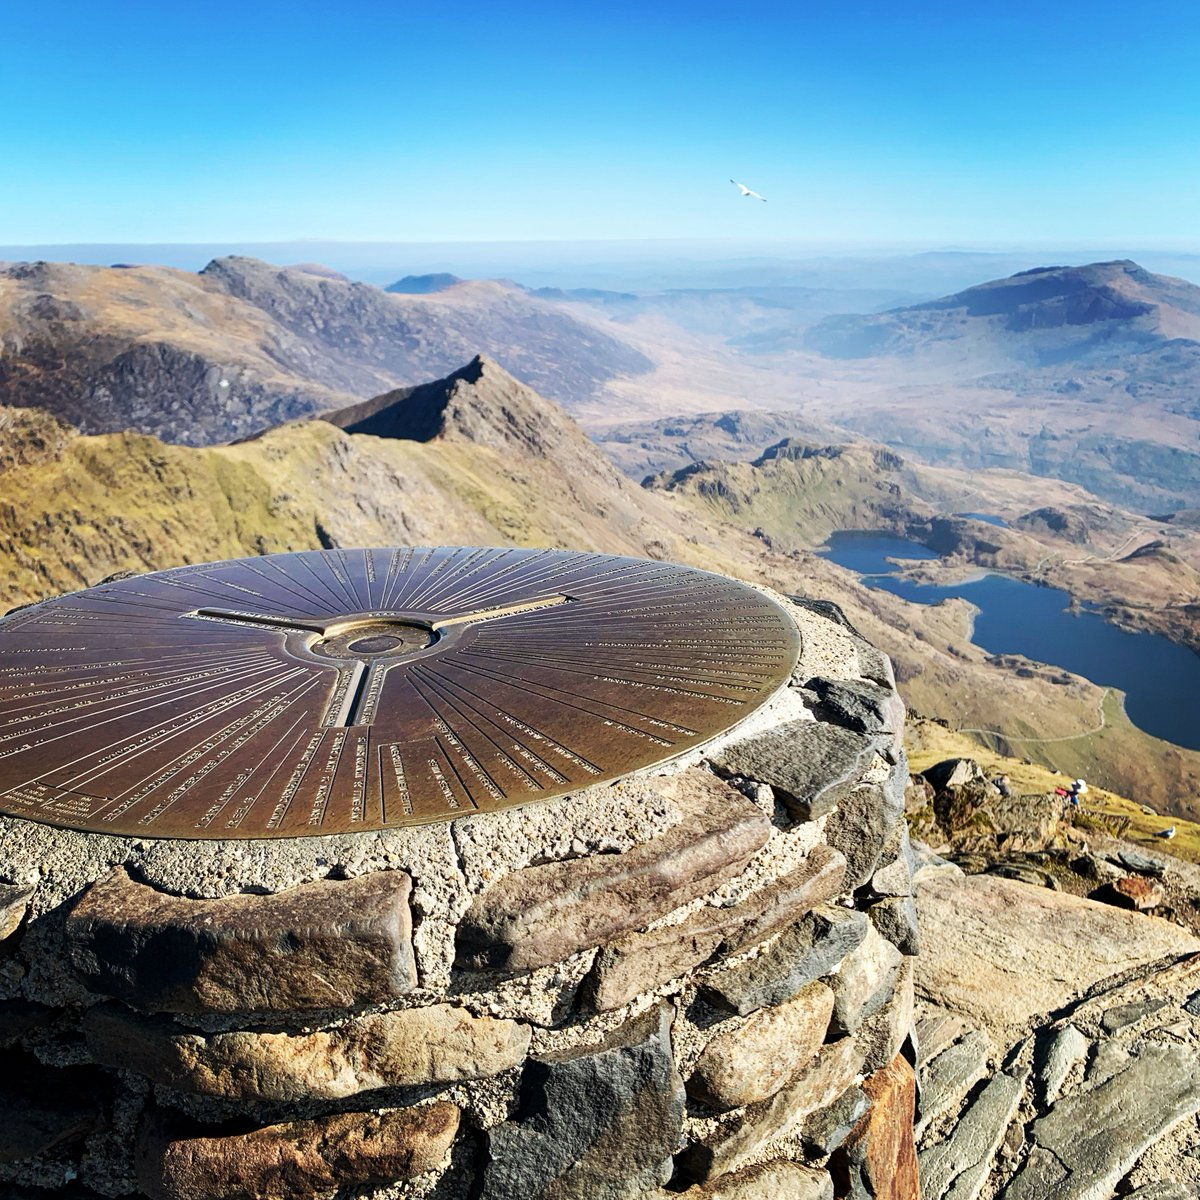 test Twitter Media - ALL TICKETS ARE NOW SOLD OUT UNTIL TUESDAY 23RD APRIL 2019 #Snowdon #Llanberis #Snowdonia #EasterWeekend #BankHolidayWeekend #Easter2019 https://t.co/WoTbH6CxLl